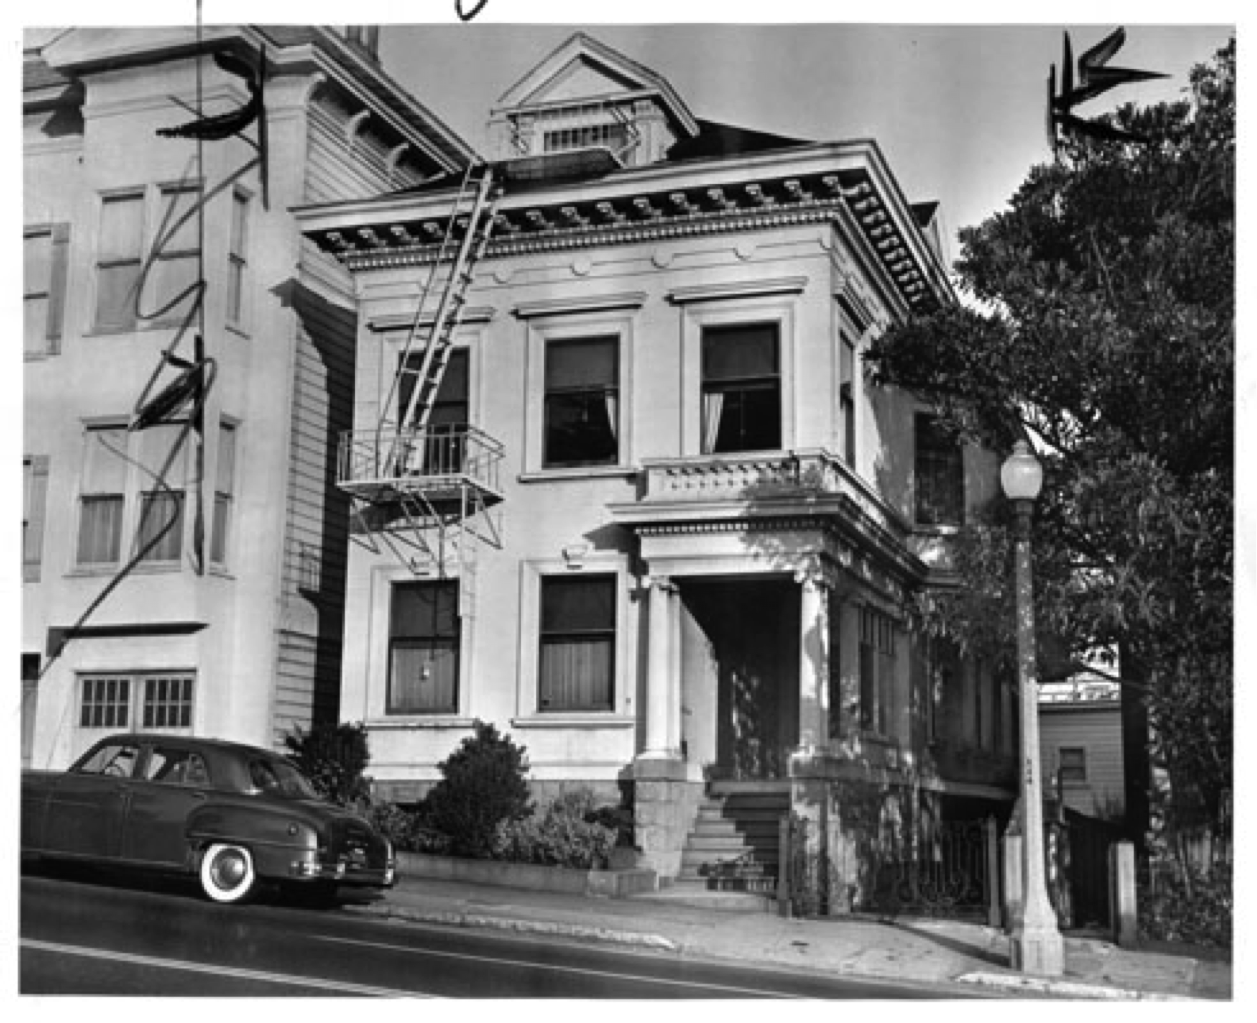 Alamo Square Residence historic black and white photo of victorian style house